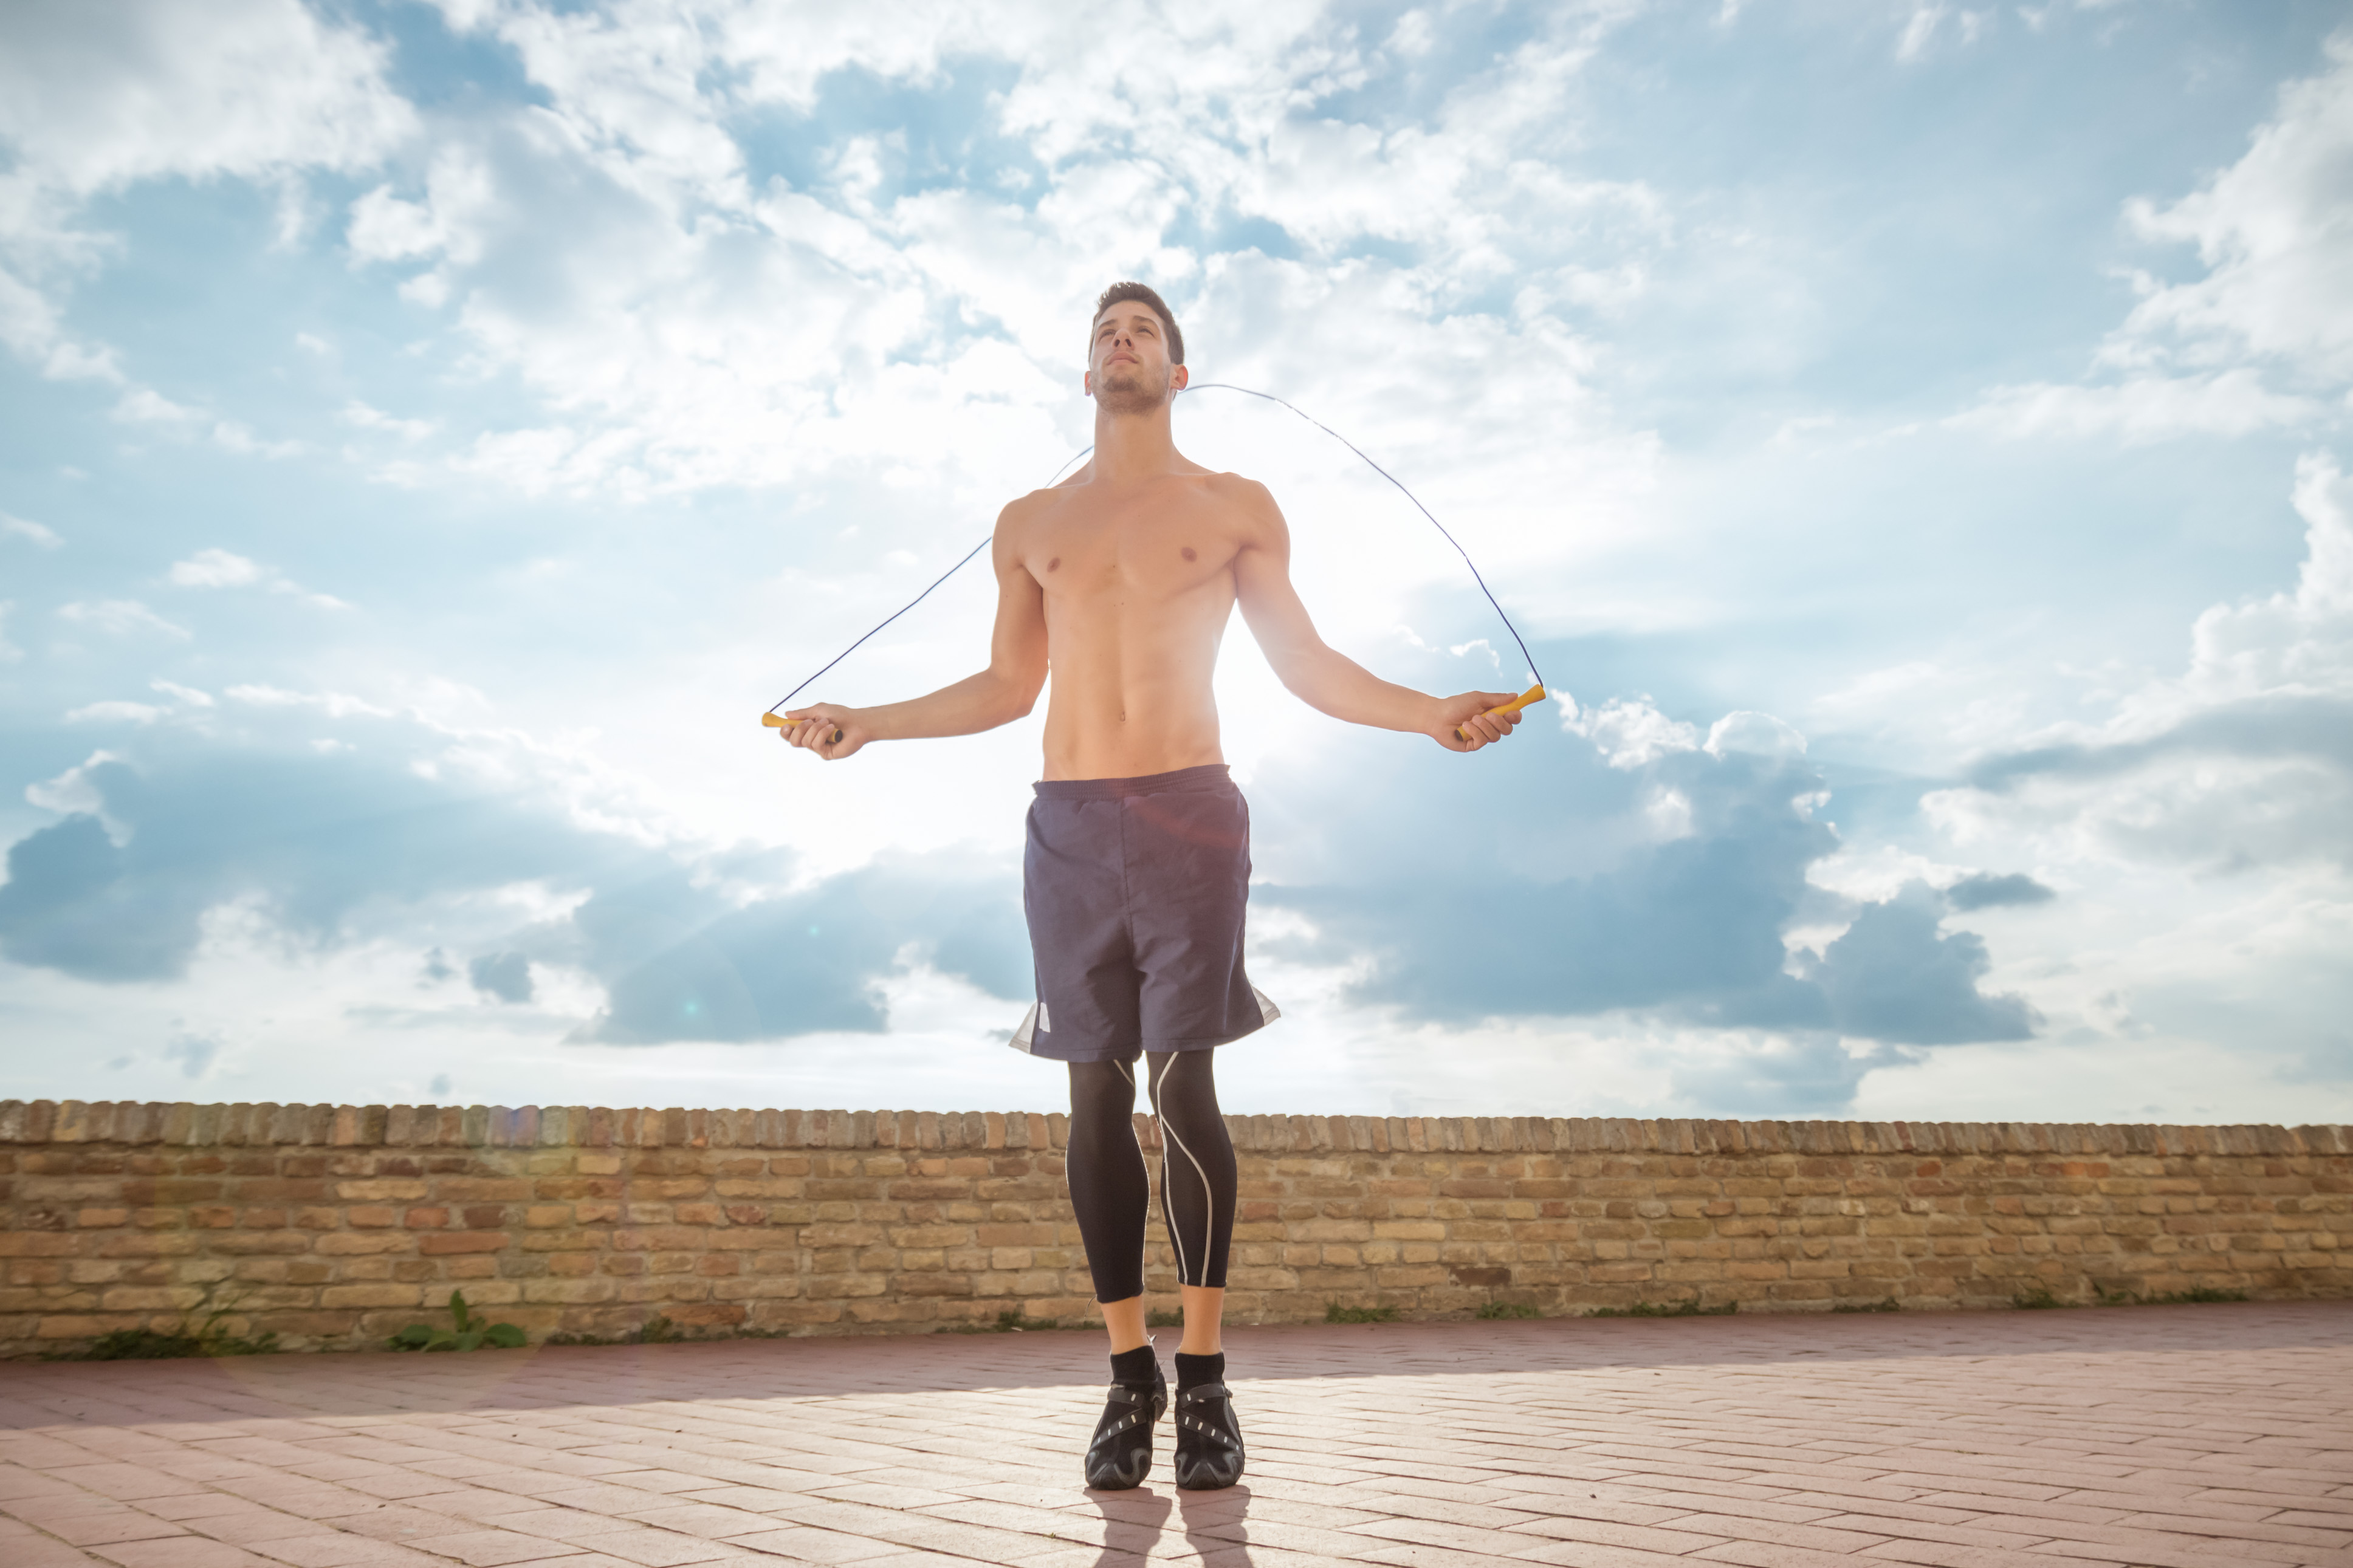 young man jump jumping rope fit slim abs model sunny